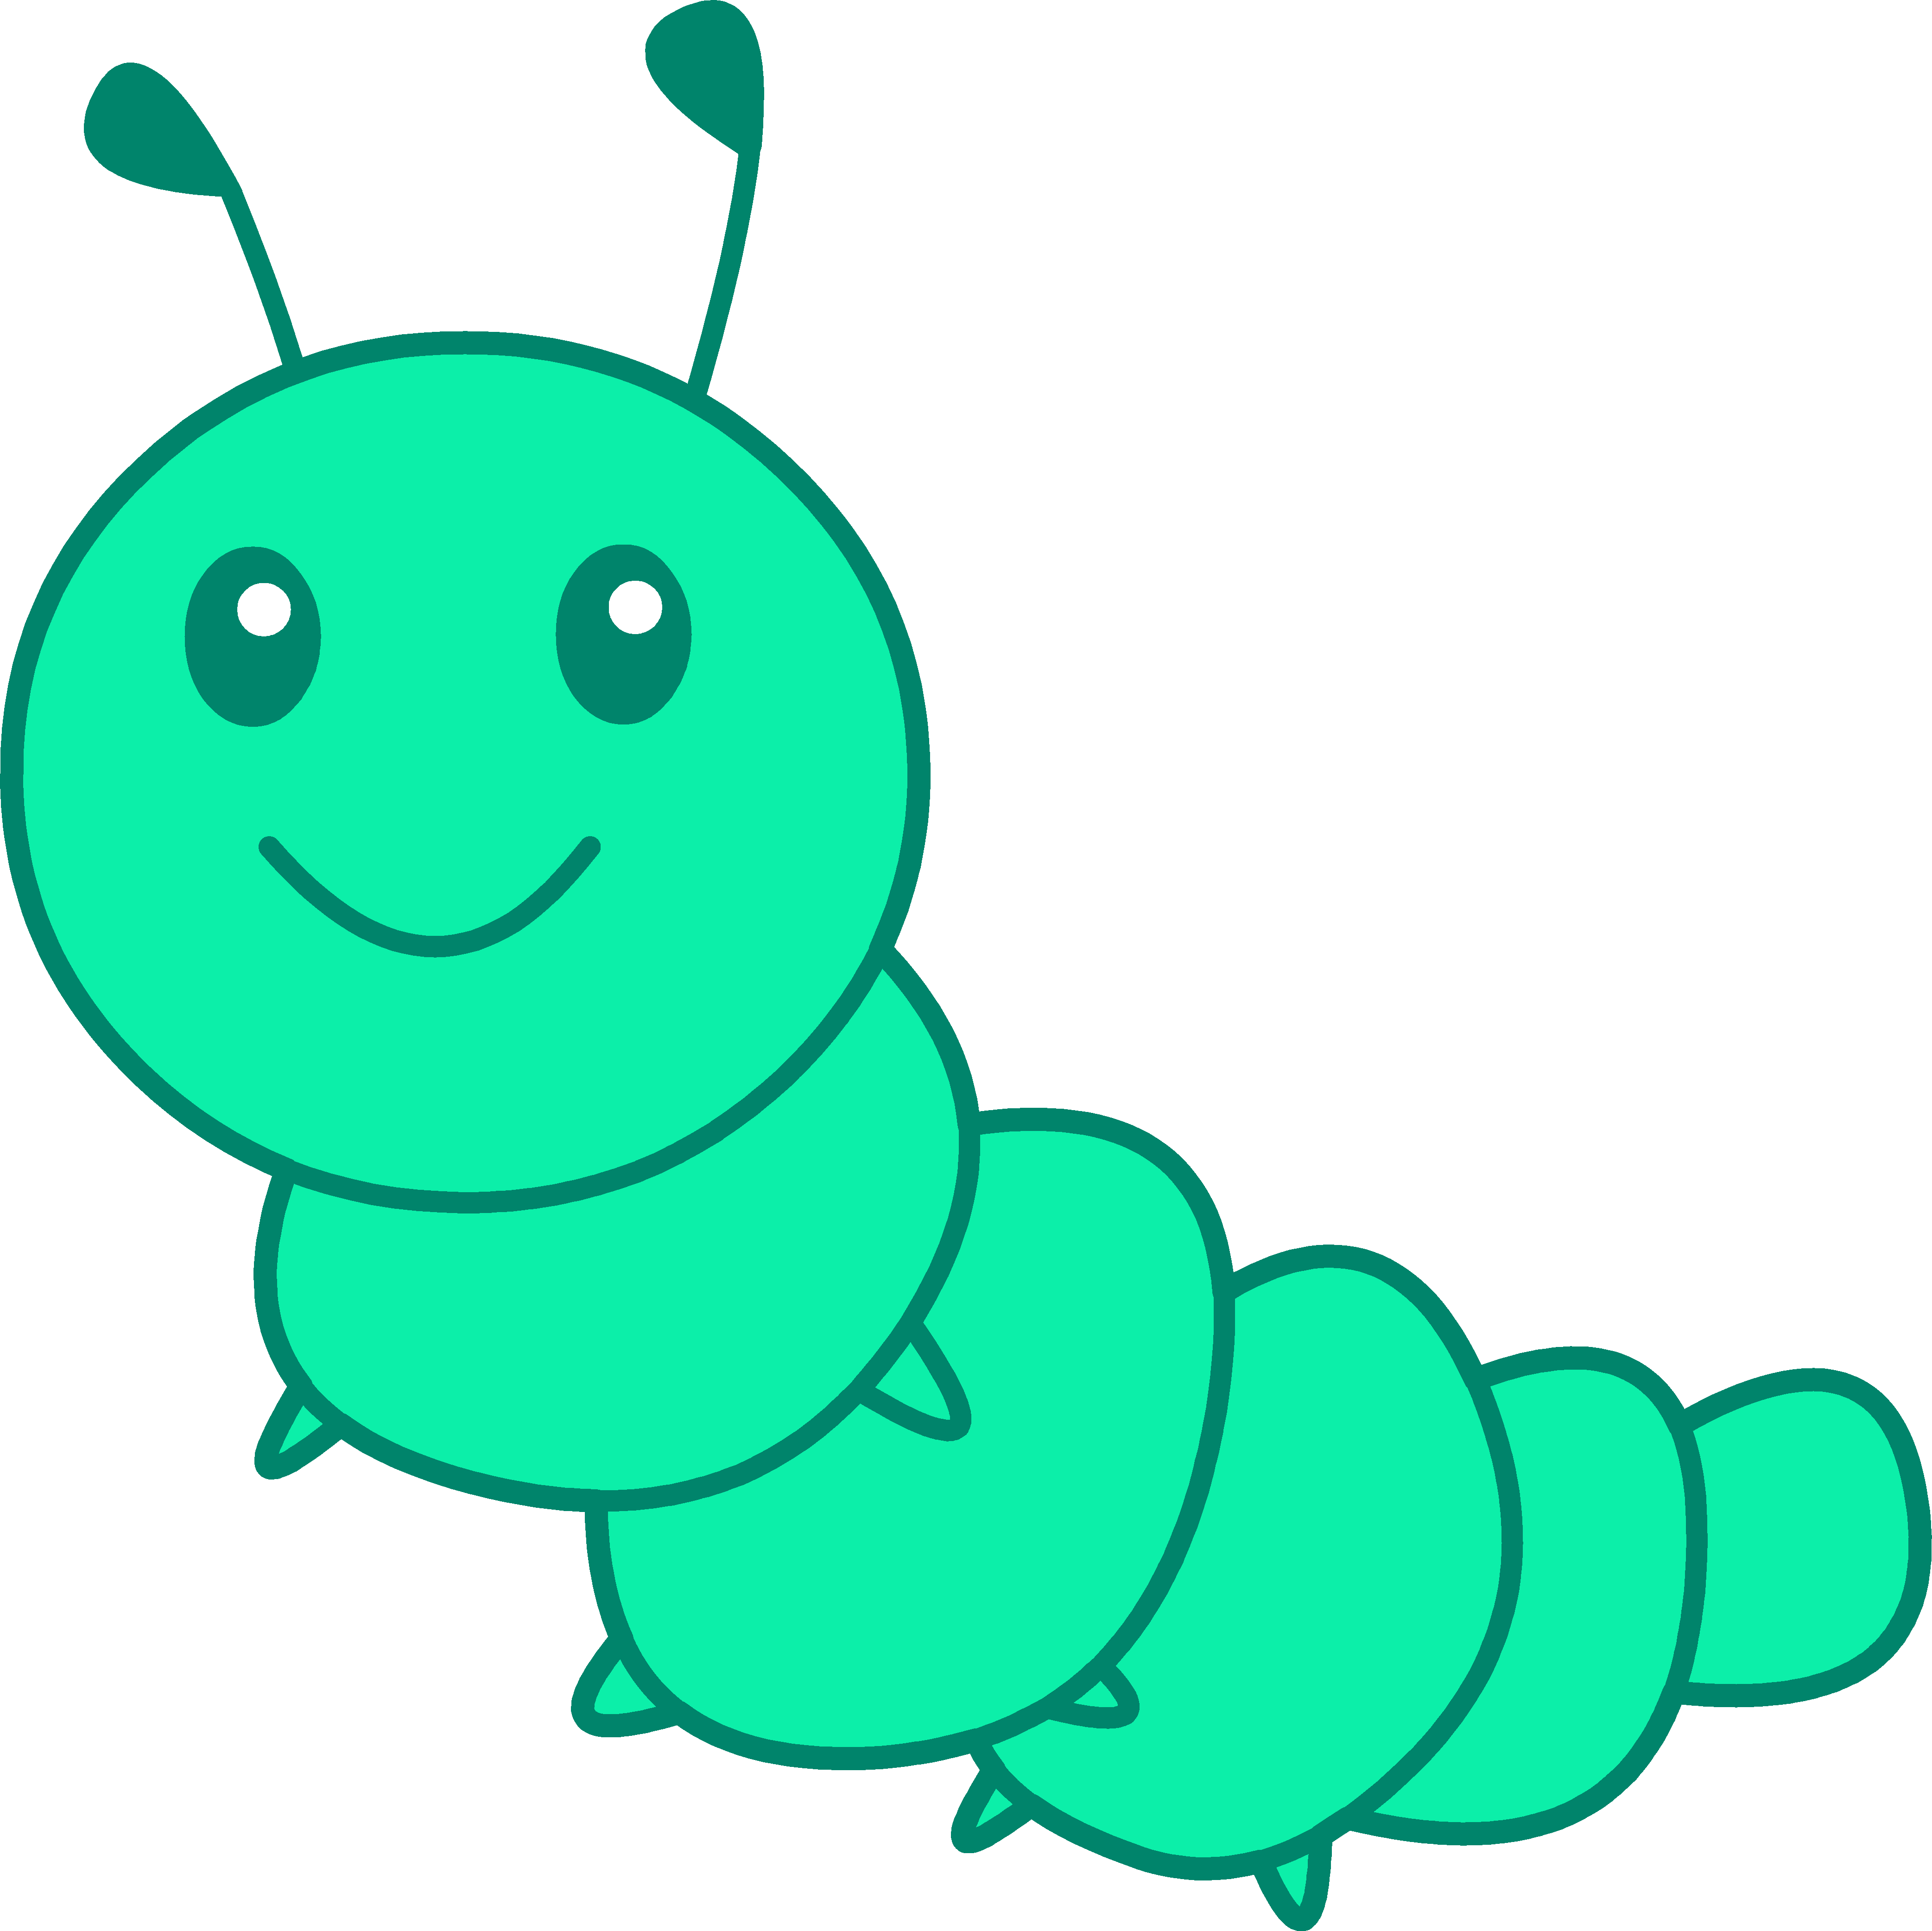 Cute Little Green Caterpillar - Free Cli-Cute Little Green Caterpillar - Free Clip Art-19